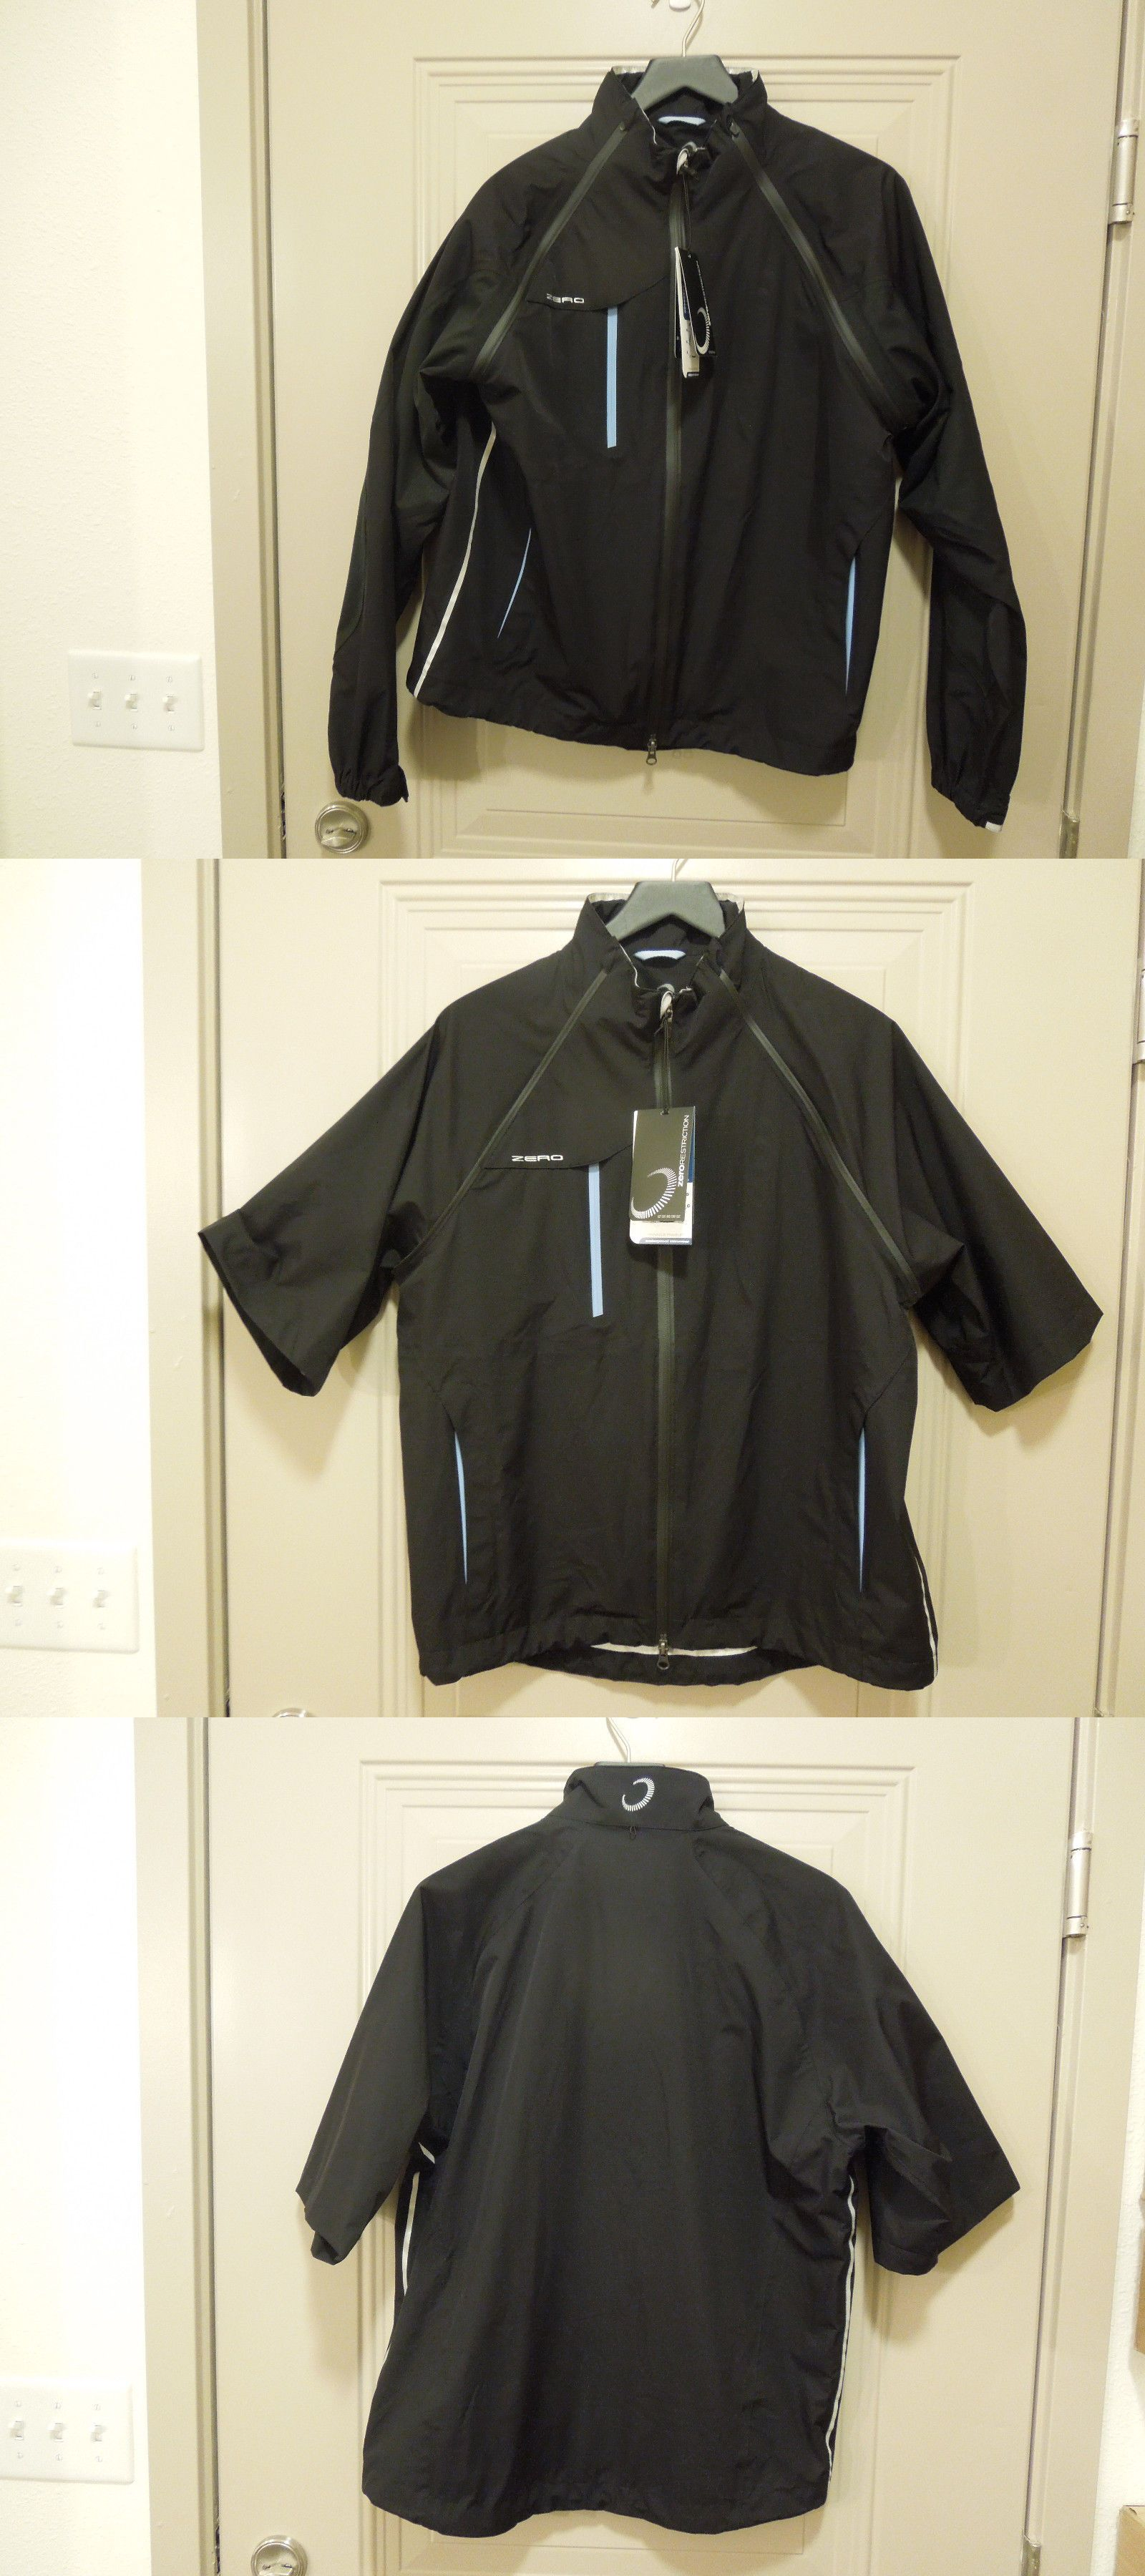 Coats and jackets zero restriction pinnacle traveler golf